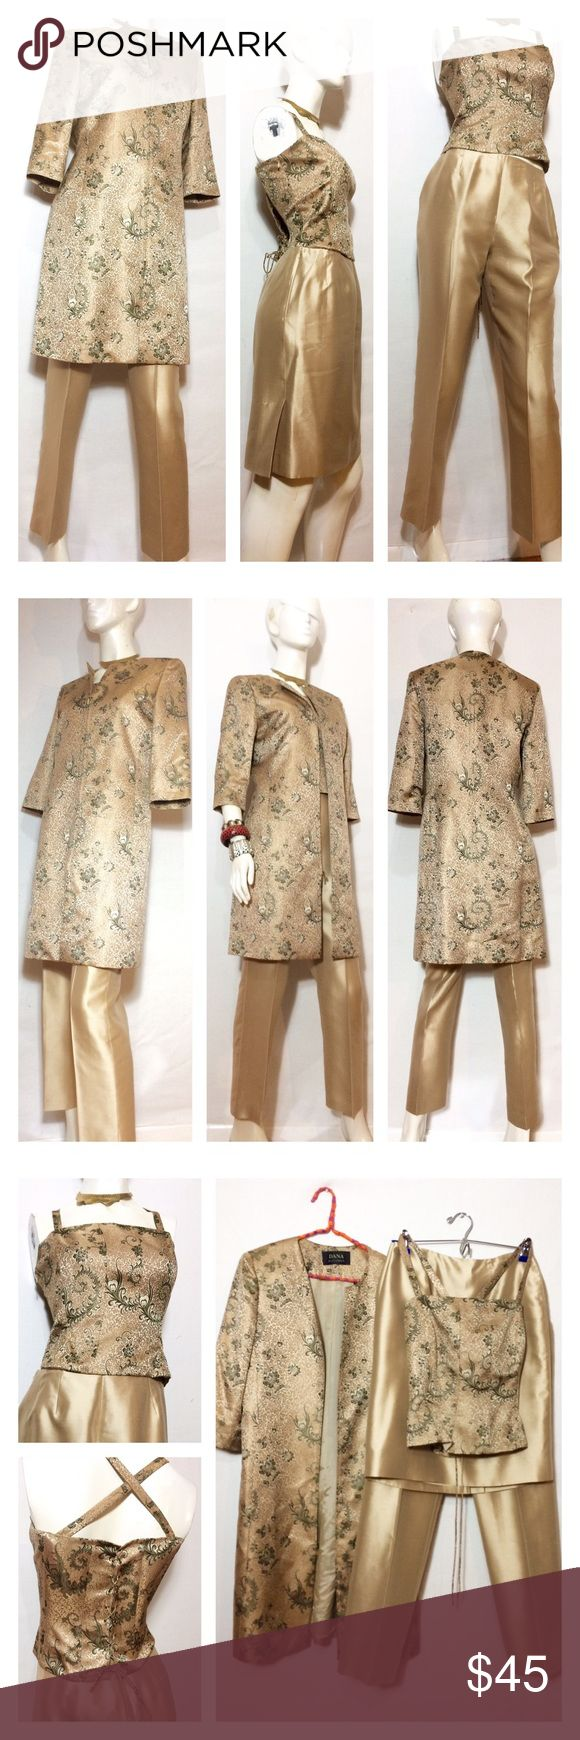 4 Pc Gold Brocade Suit w Corset Pants Skirt Jacket gorgeous vtg brocade suit! Comes w a long jacket w 2 pockets & zip closure.  Matching corset has side zip closure on each side, stretch elastic in back underneath the criss cross laces, adjustable shoulder straps & lined w boning for a slimming silhouette.  Pants & skirt are both pleated, have zip closure & are 100% silk. Sleek gold color! All items are lined - purchased at an estate sale & inspected for tears, stains, etc - no snags /flaws…